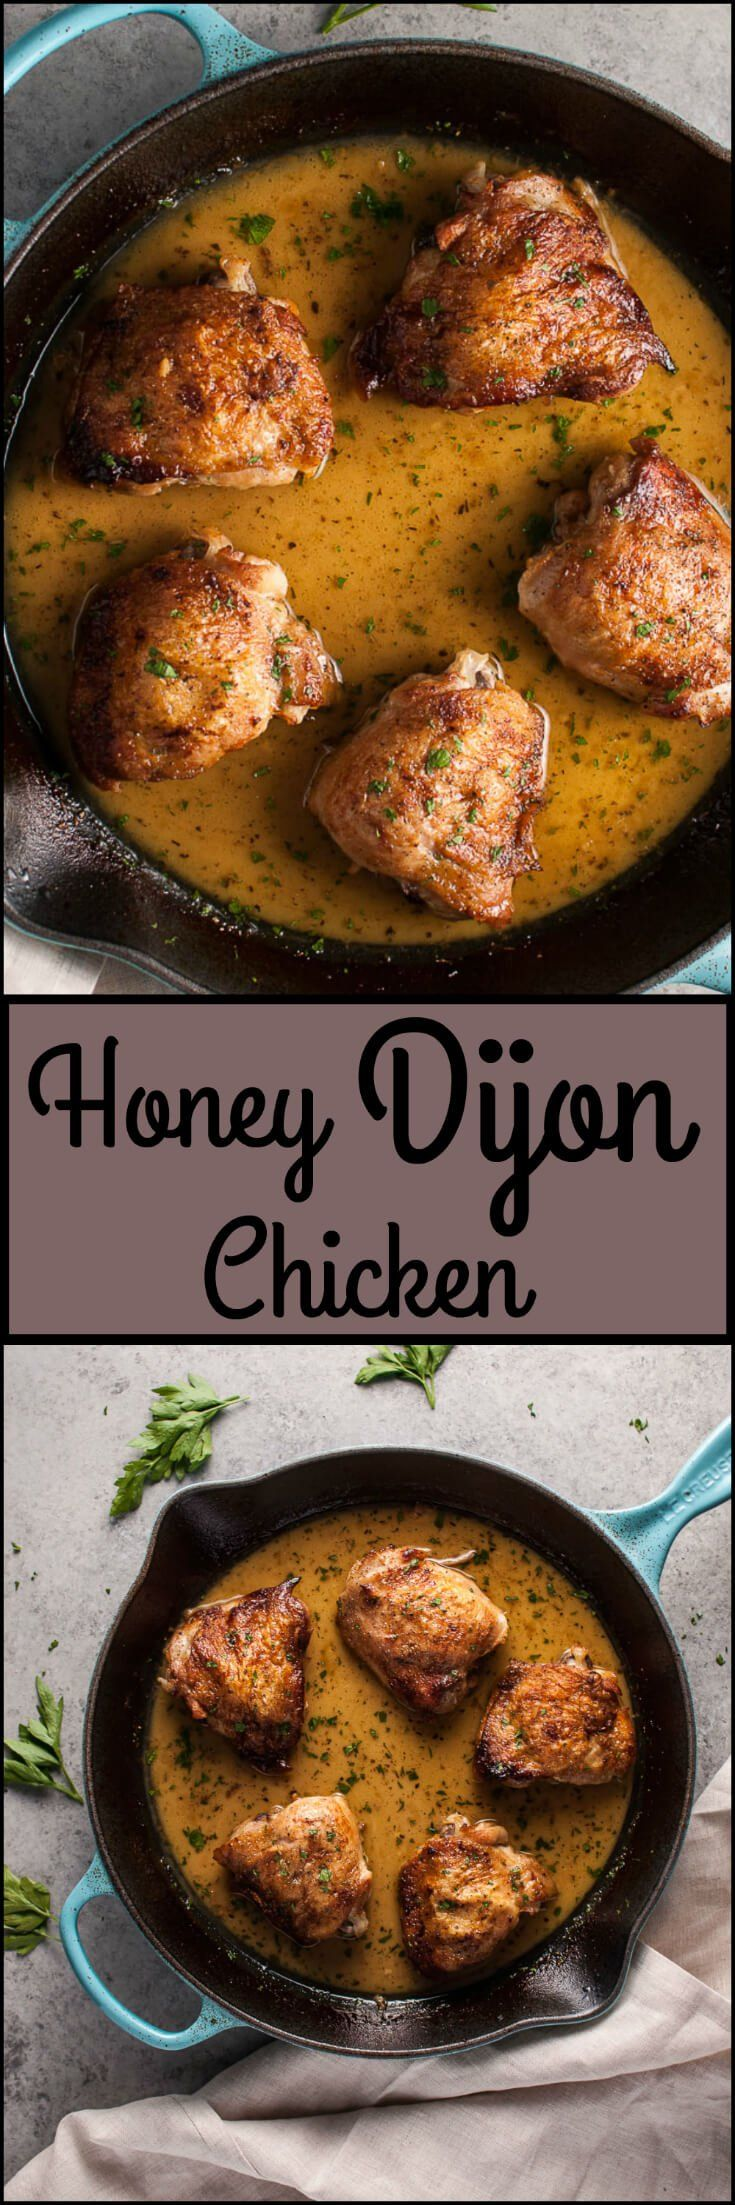 My crispy honey Dijon chicken is a grown-up twist on honey mustard, and it's absolutely delicious. Dijon mustard, white wine, and butter make it taste extra luxe.